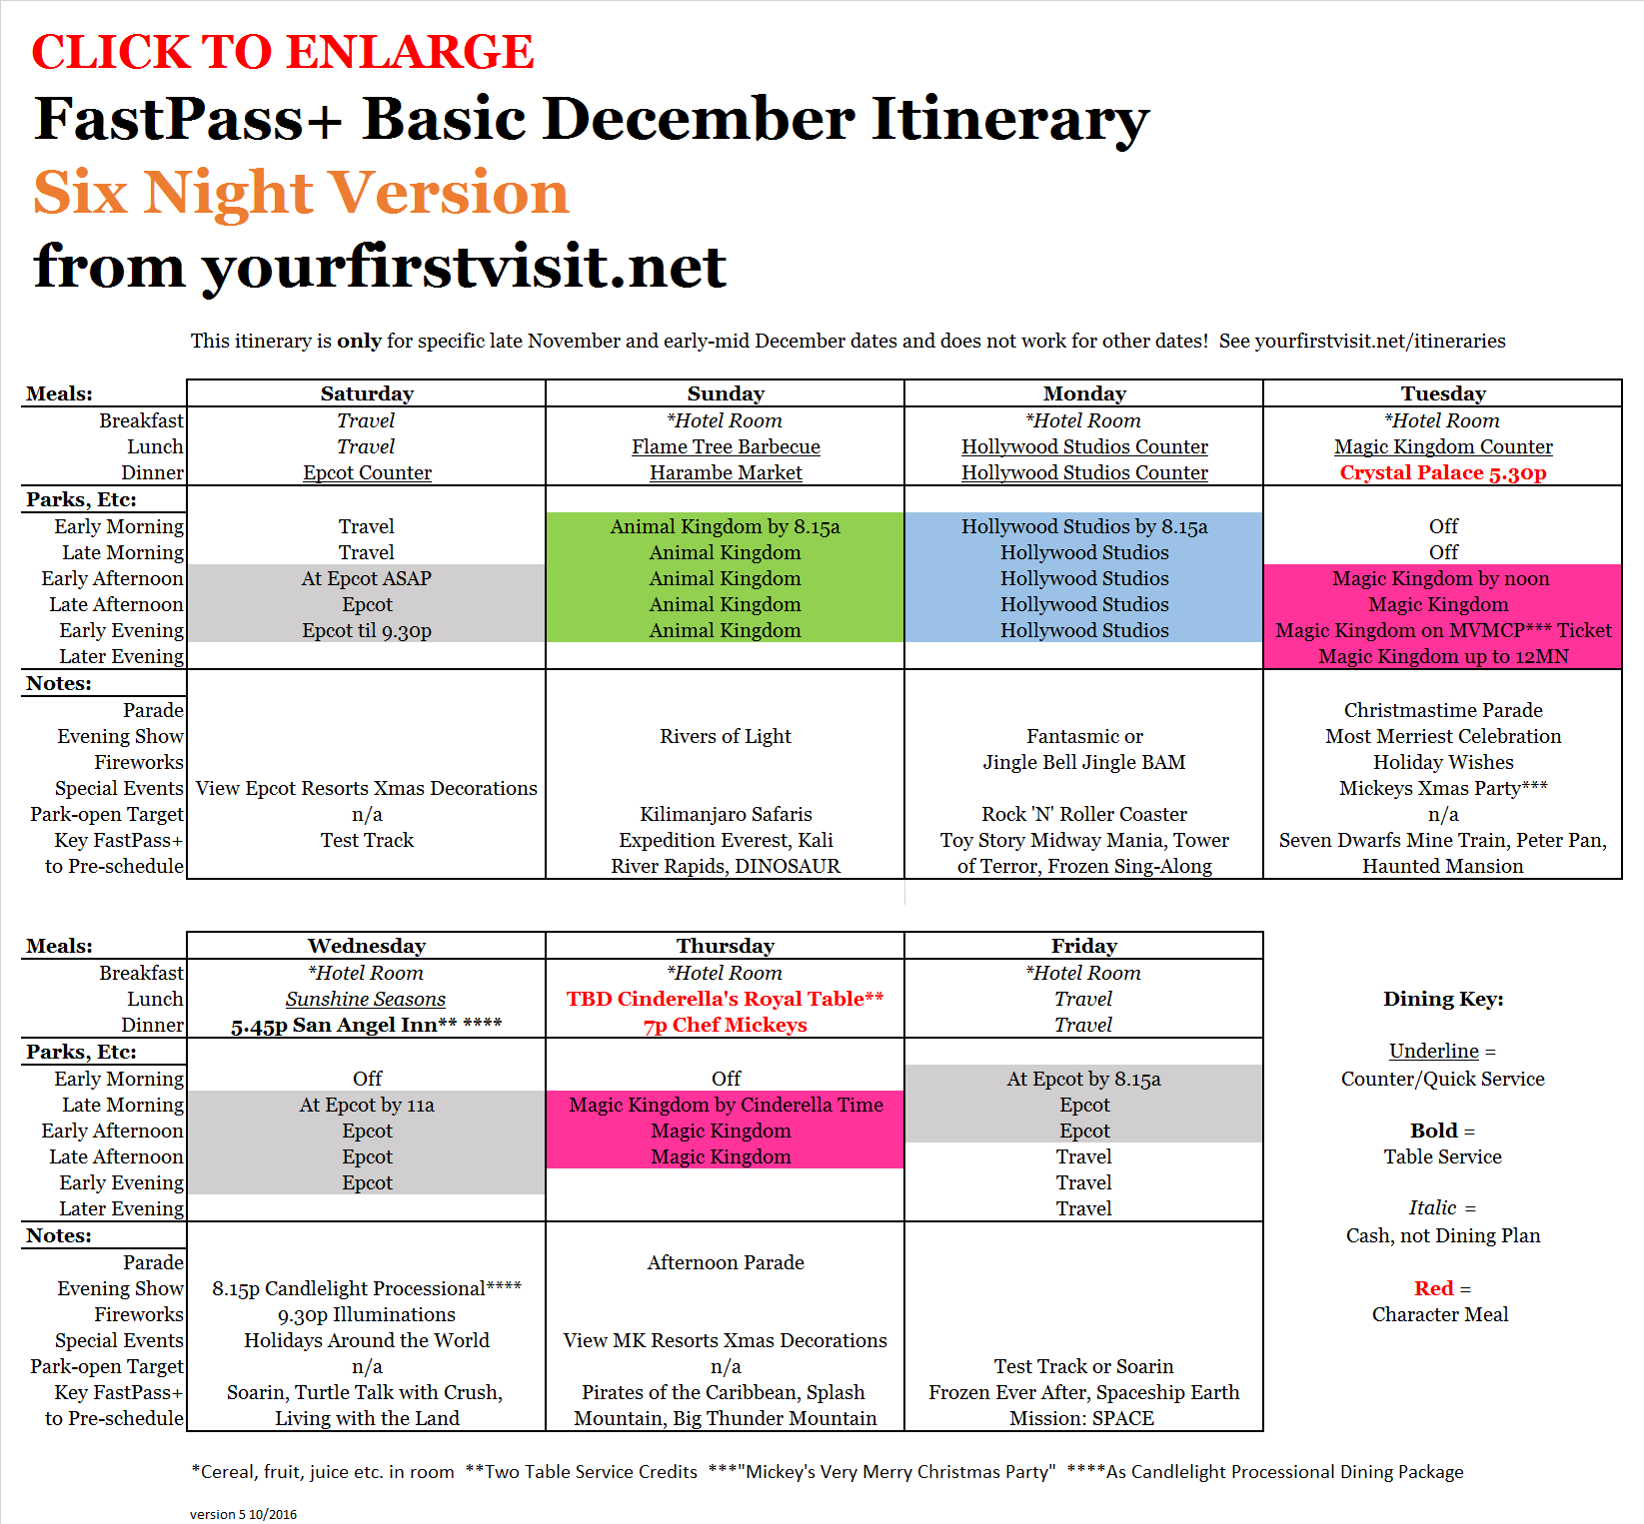 six-night-variant-december-itinerary-from-yourfirstvisit-net-oct-2